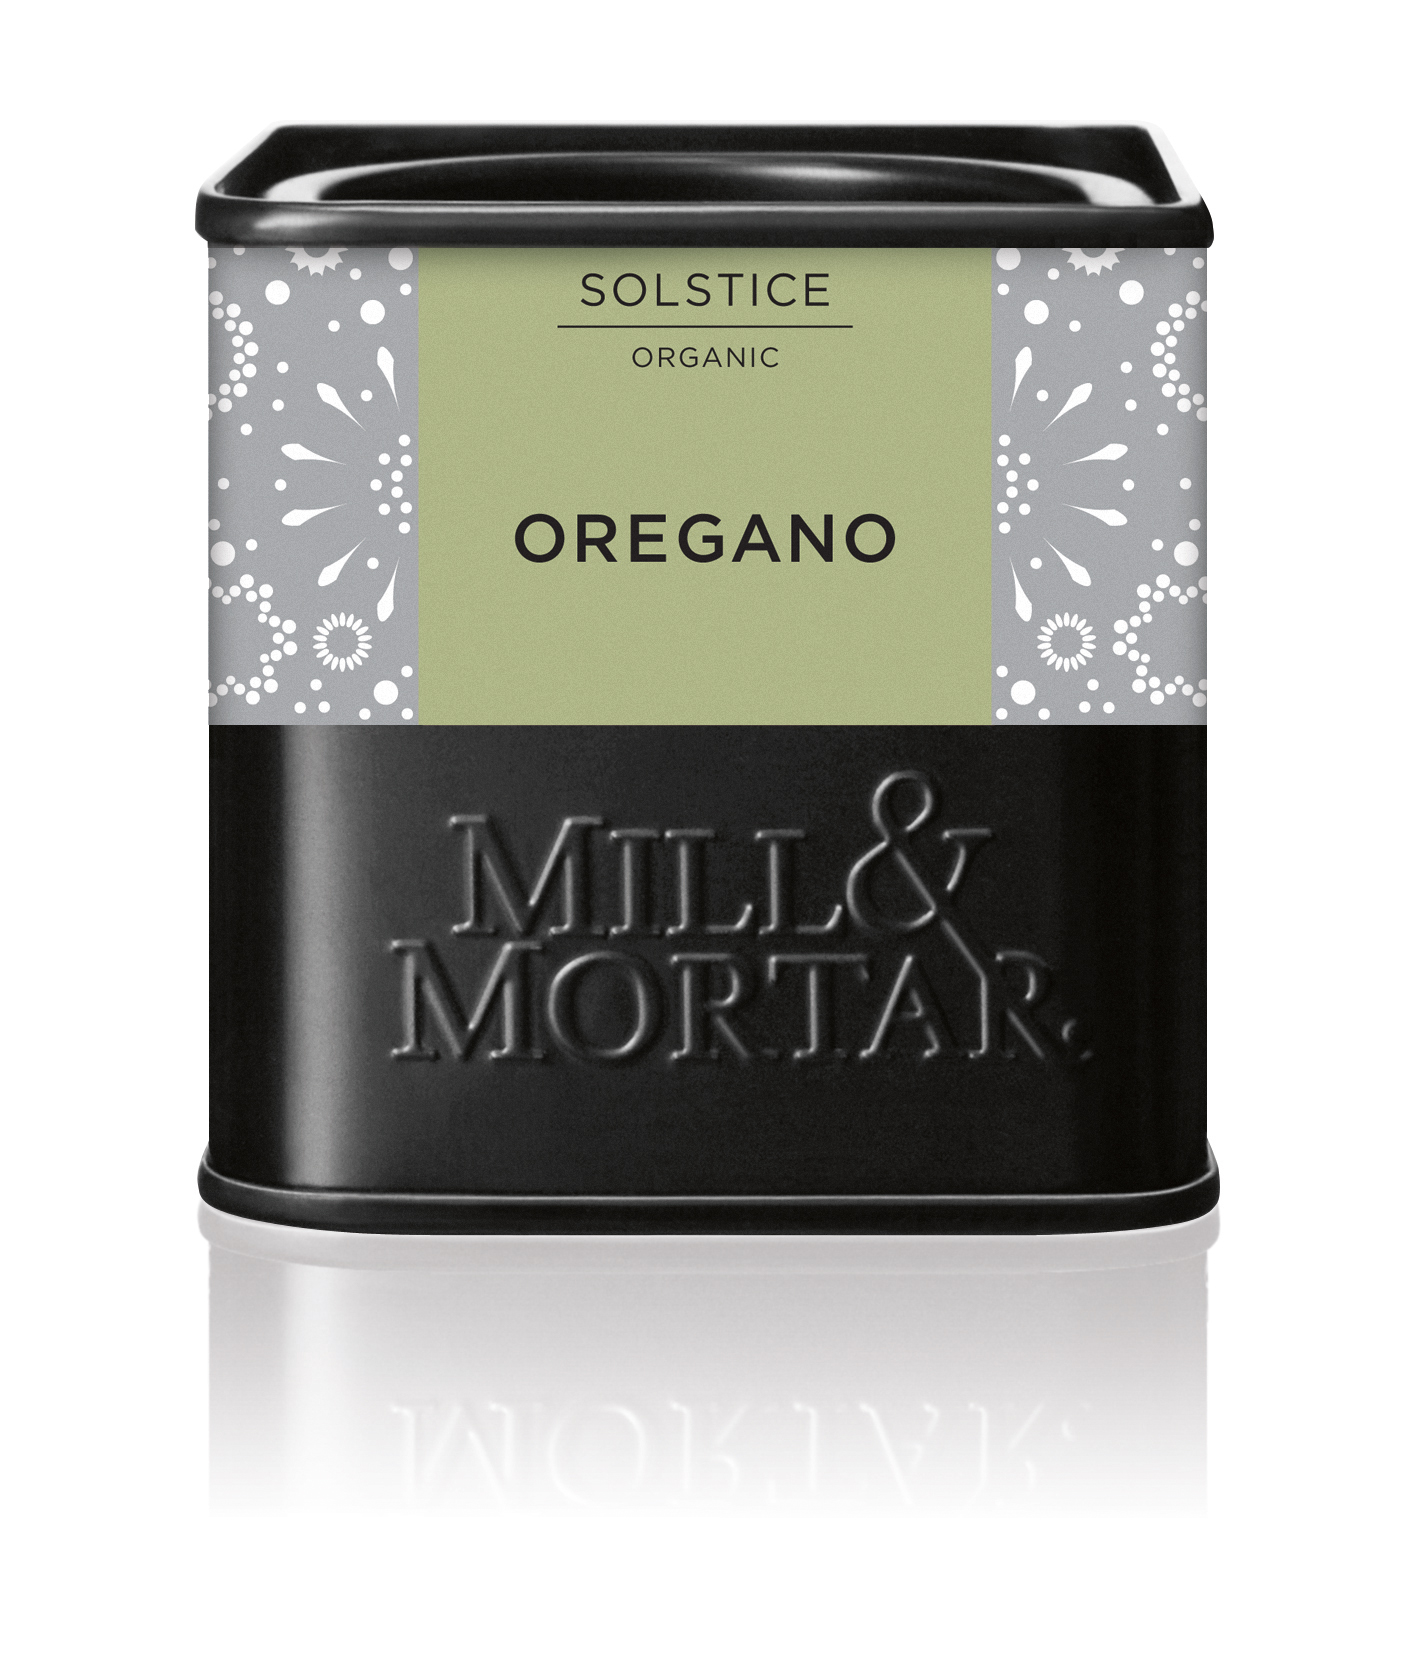 Mill & Mortar Oregano skåret ØKO 16 g